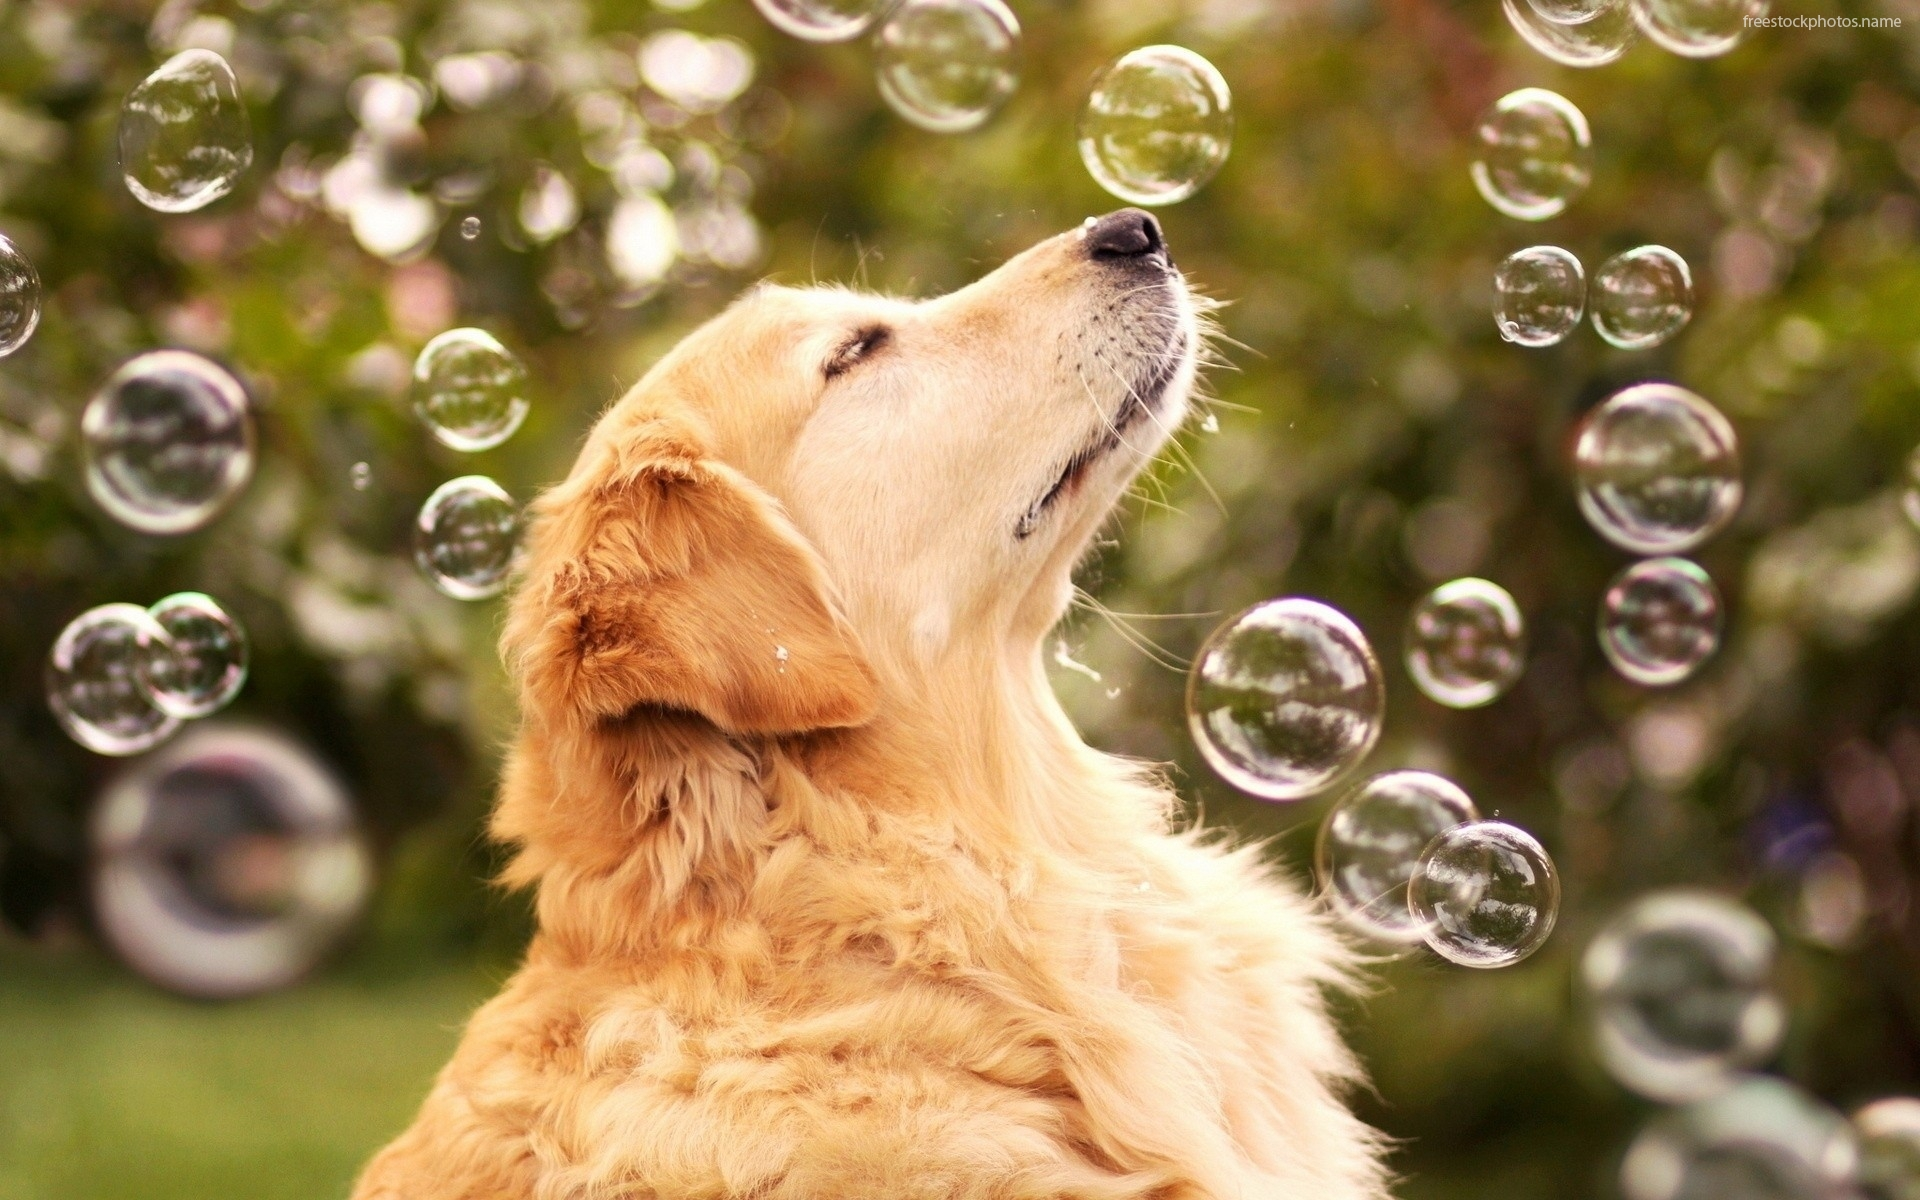 Images of a Dog Catching Soup Bubbles 539.06 Kb